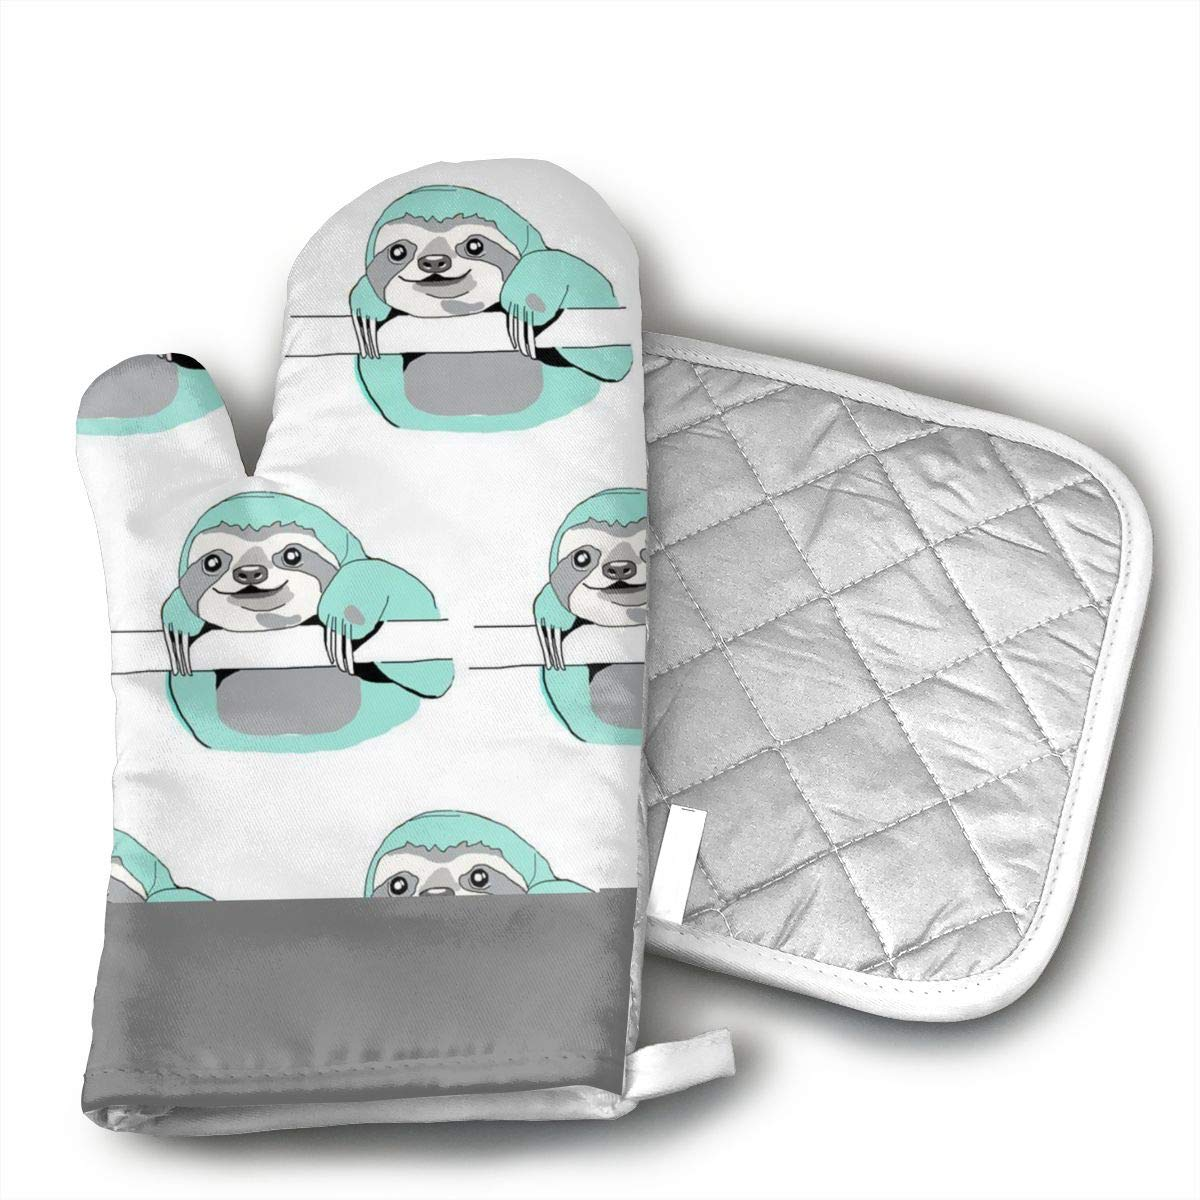 CHWEYAQ Mint Sloths Oven Mitts with Nice Printing Cotton Lining, Heat Resistant to Kitchen Oven Gloves Pot Holder for Cooking